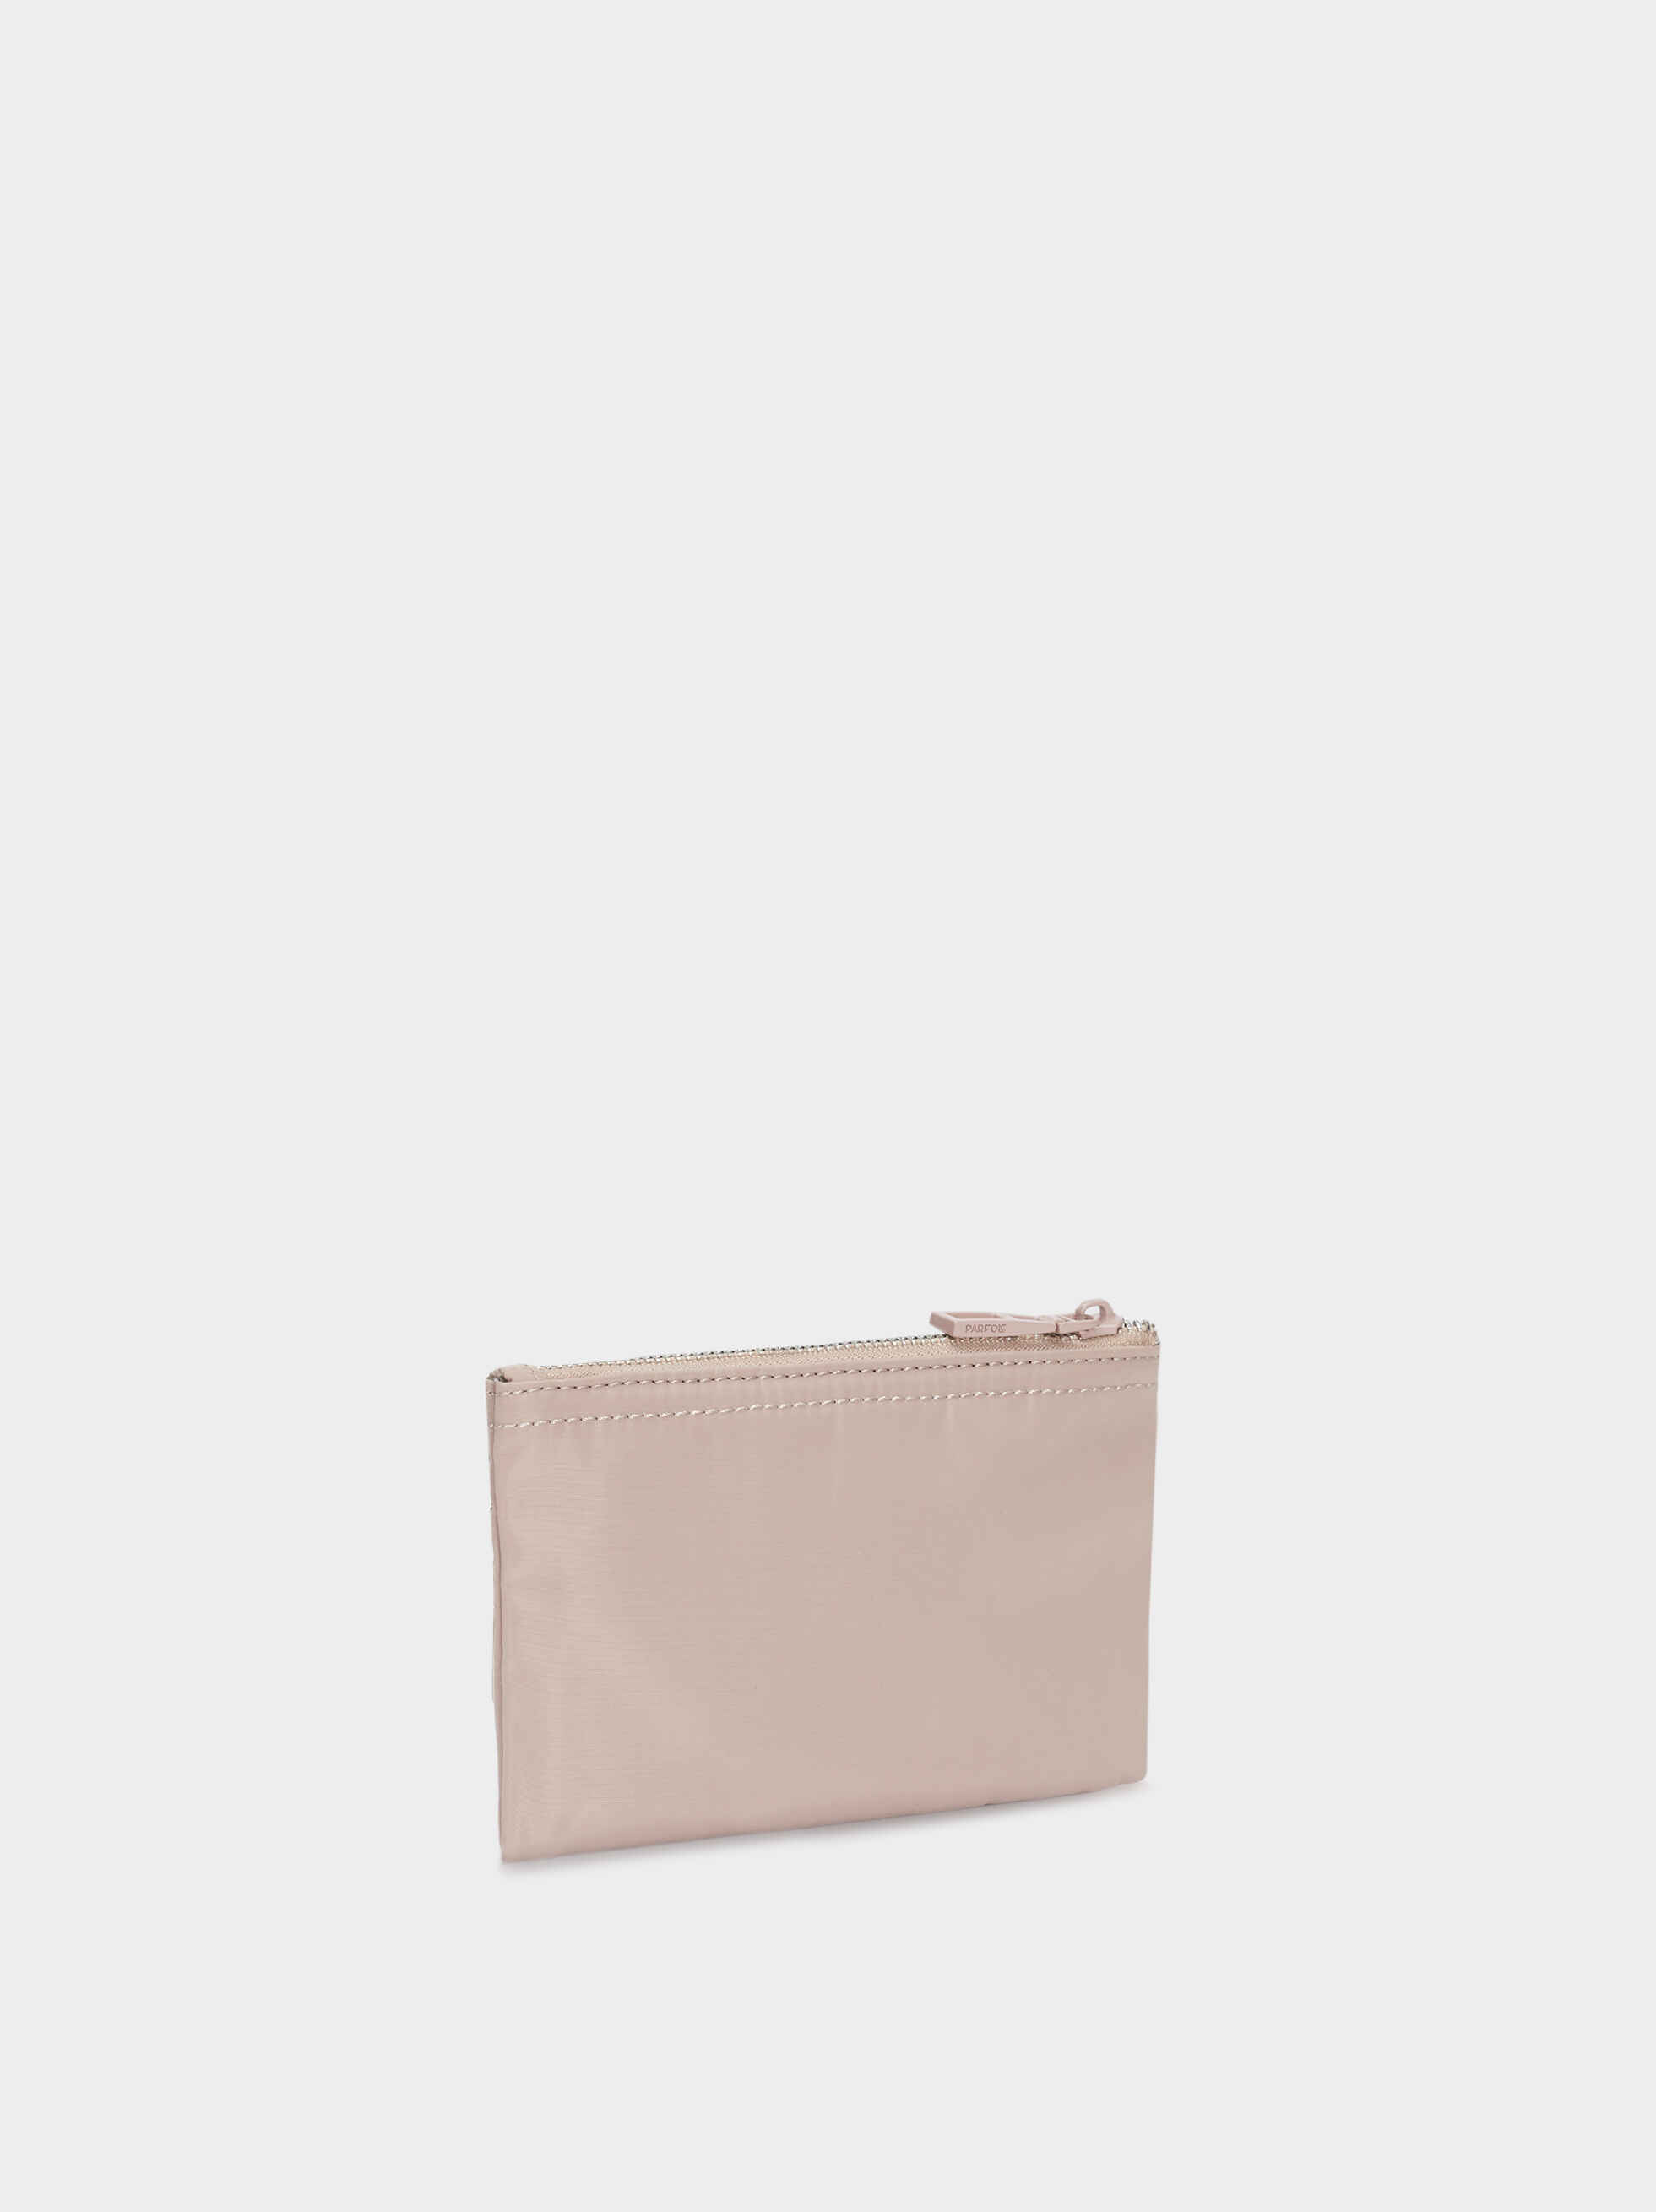 Nylon Multi-Use Purse, Pink, hi-res